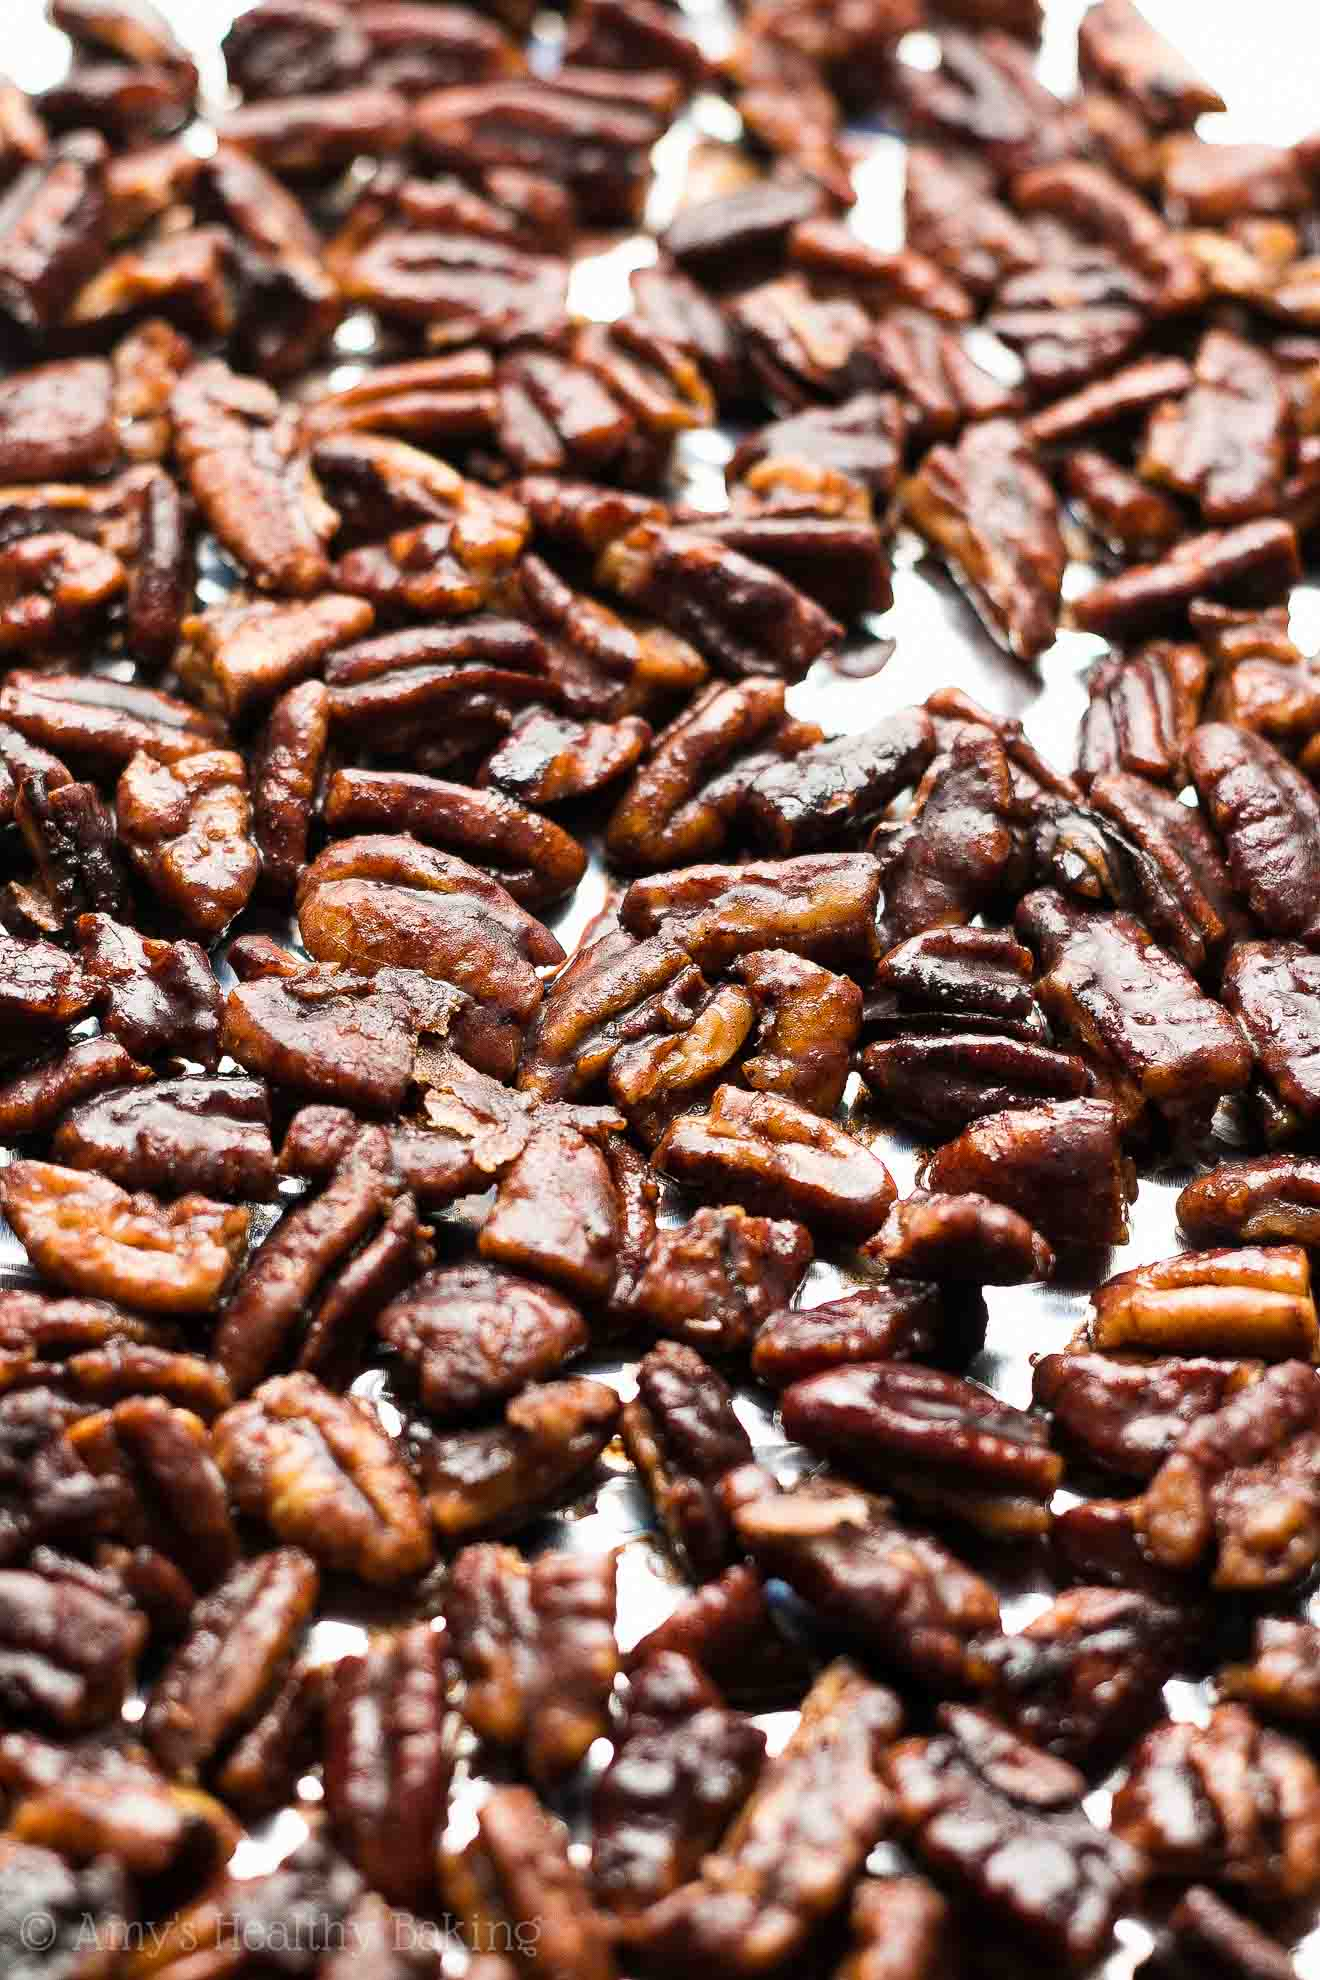 The ULTIMATE Healthy Candied Pecans -- sweet, crunchy bliss! Definitely the BEST recipe I've ever tried, by far! No butter or sugar & so easy to make! You just need 5 minutes! #recipe #healthy #lowcarb #glutenfree #vegan